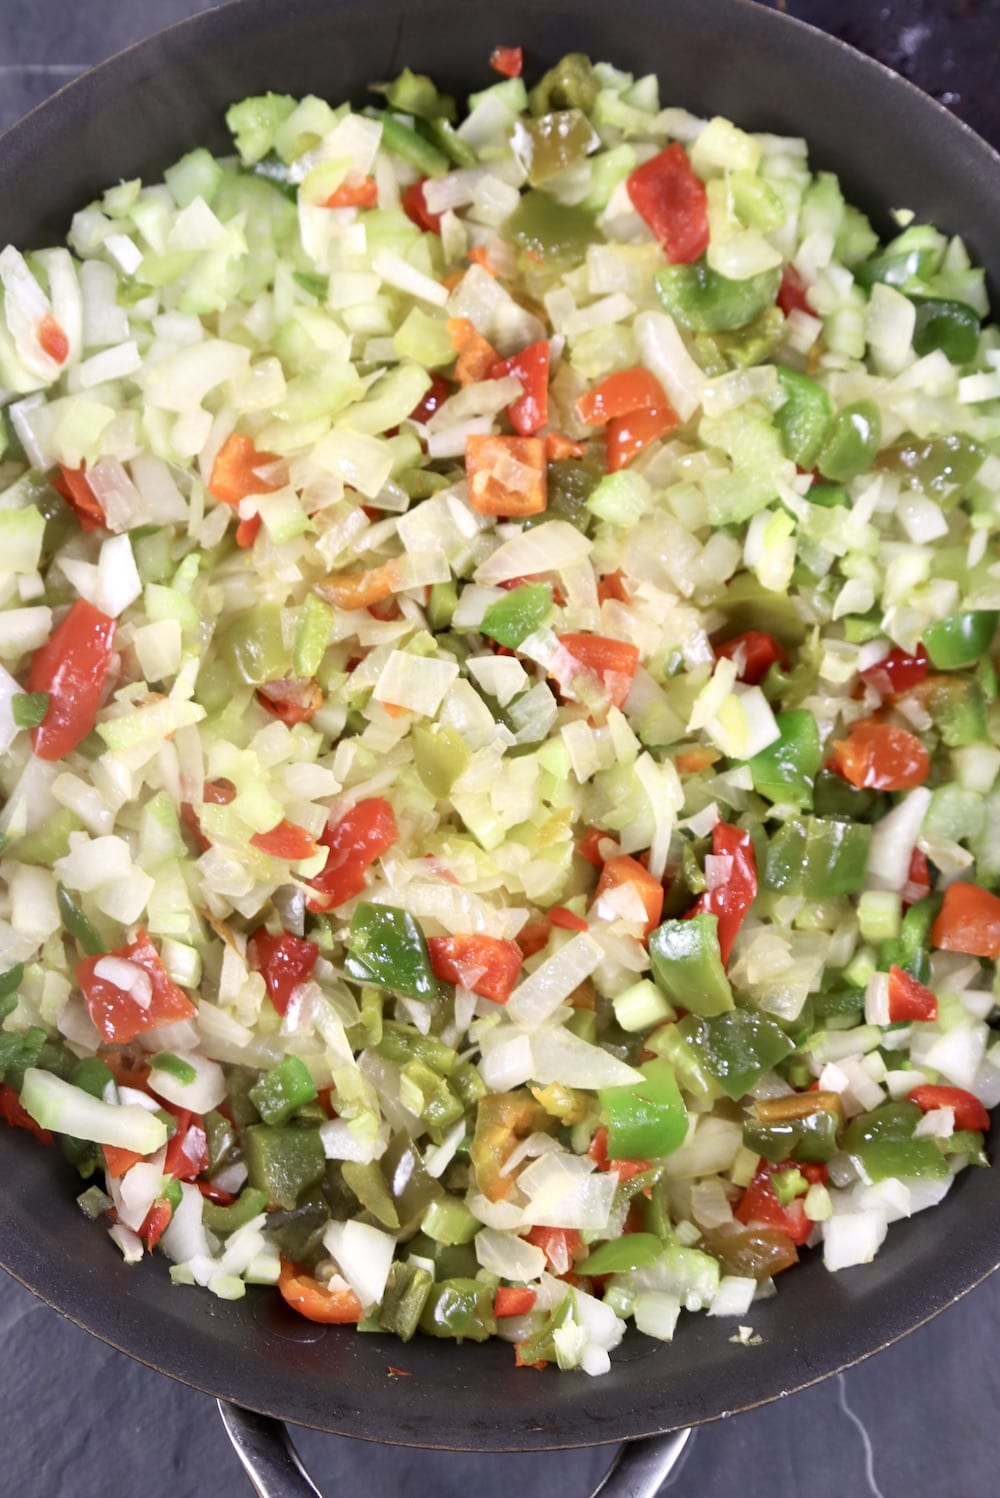 Peppers, onions, celery in a skillet